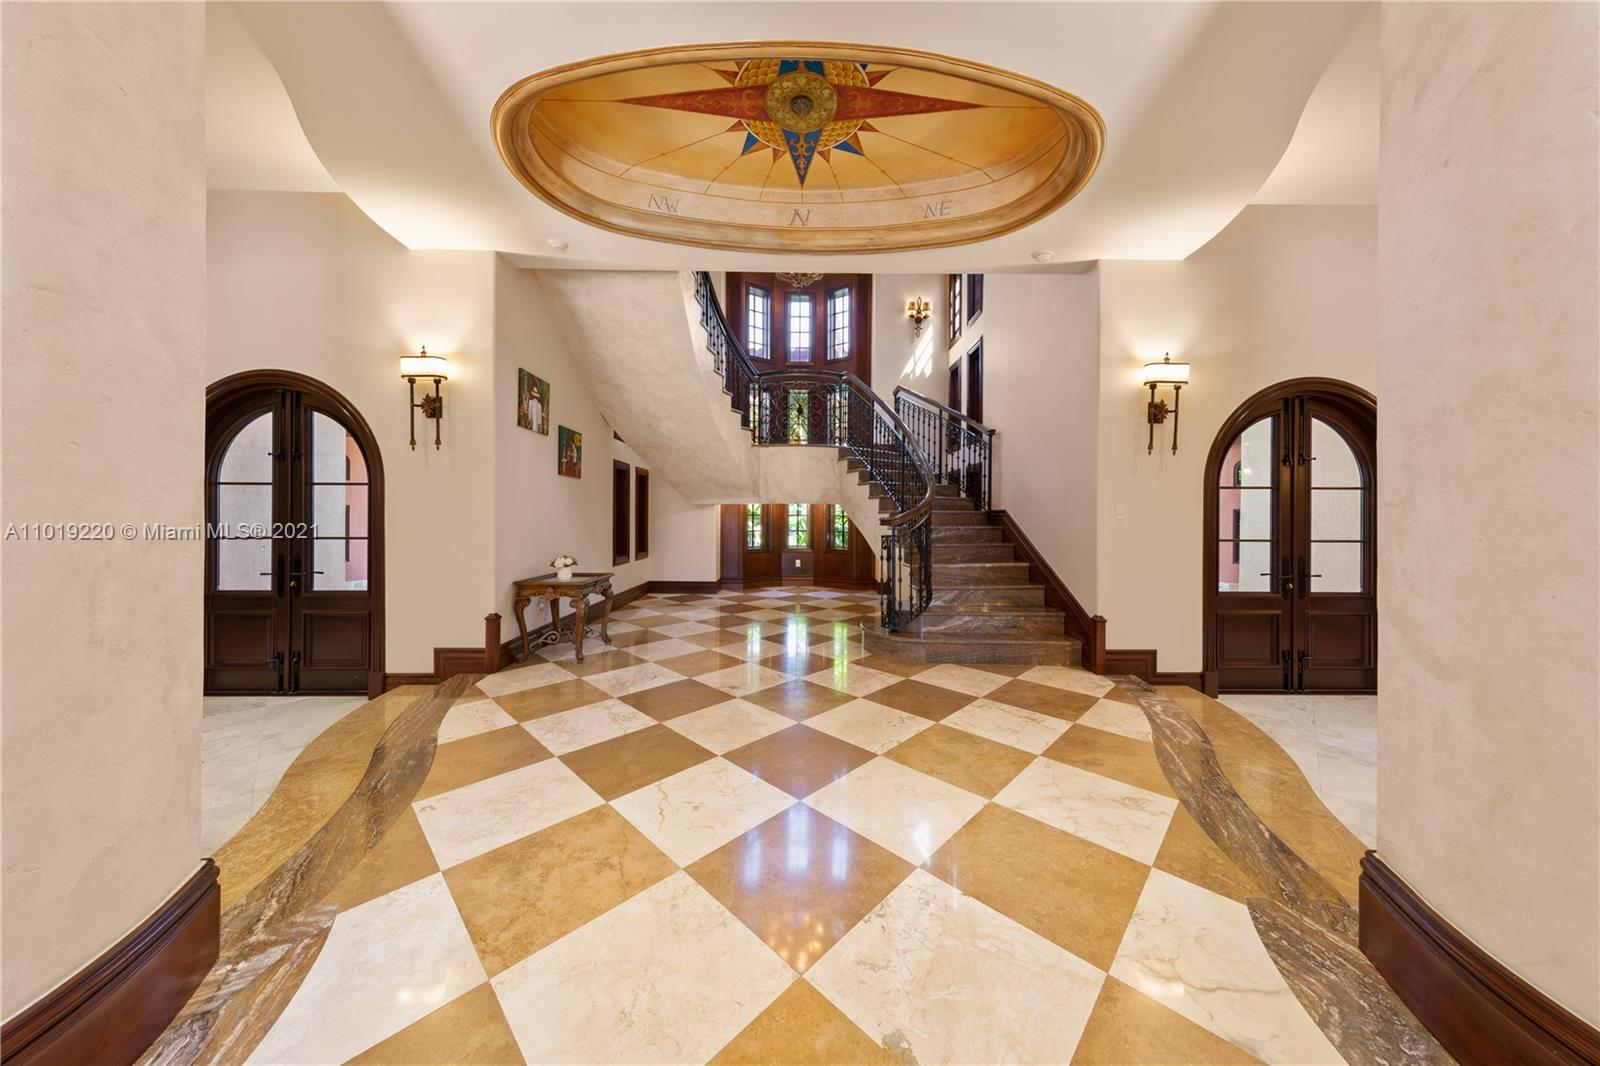 COMPASS FOYER: HAND PAINTED COMPASS THAT INCLUDES GOLD LEAF IN DESIGN AND HAS THE ESTATES COORDINATES. LASER CUT MARBLE STEPS AND STAIRWAYS